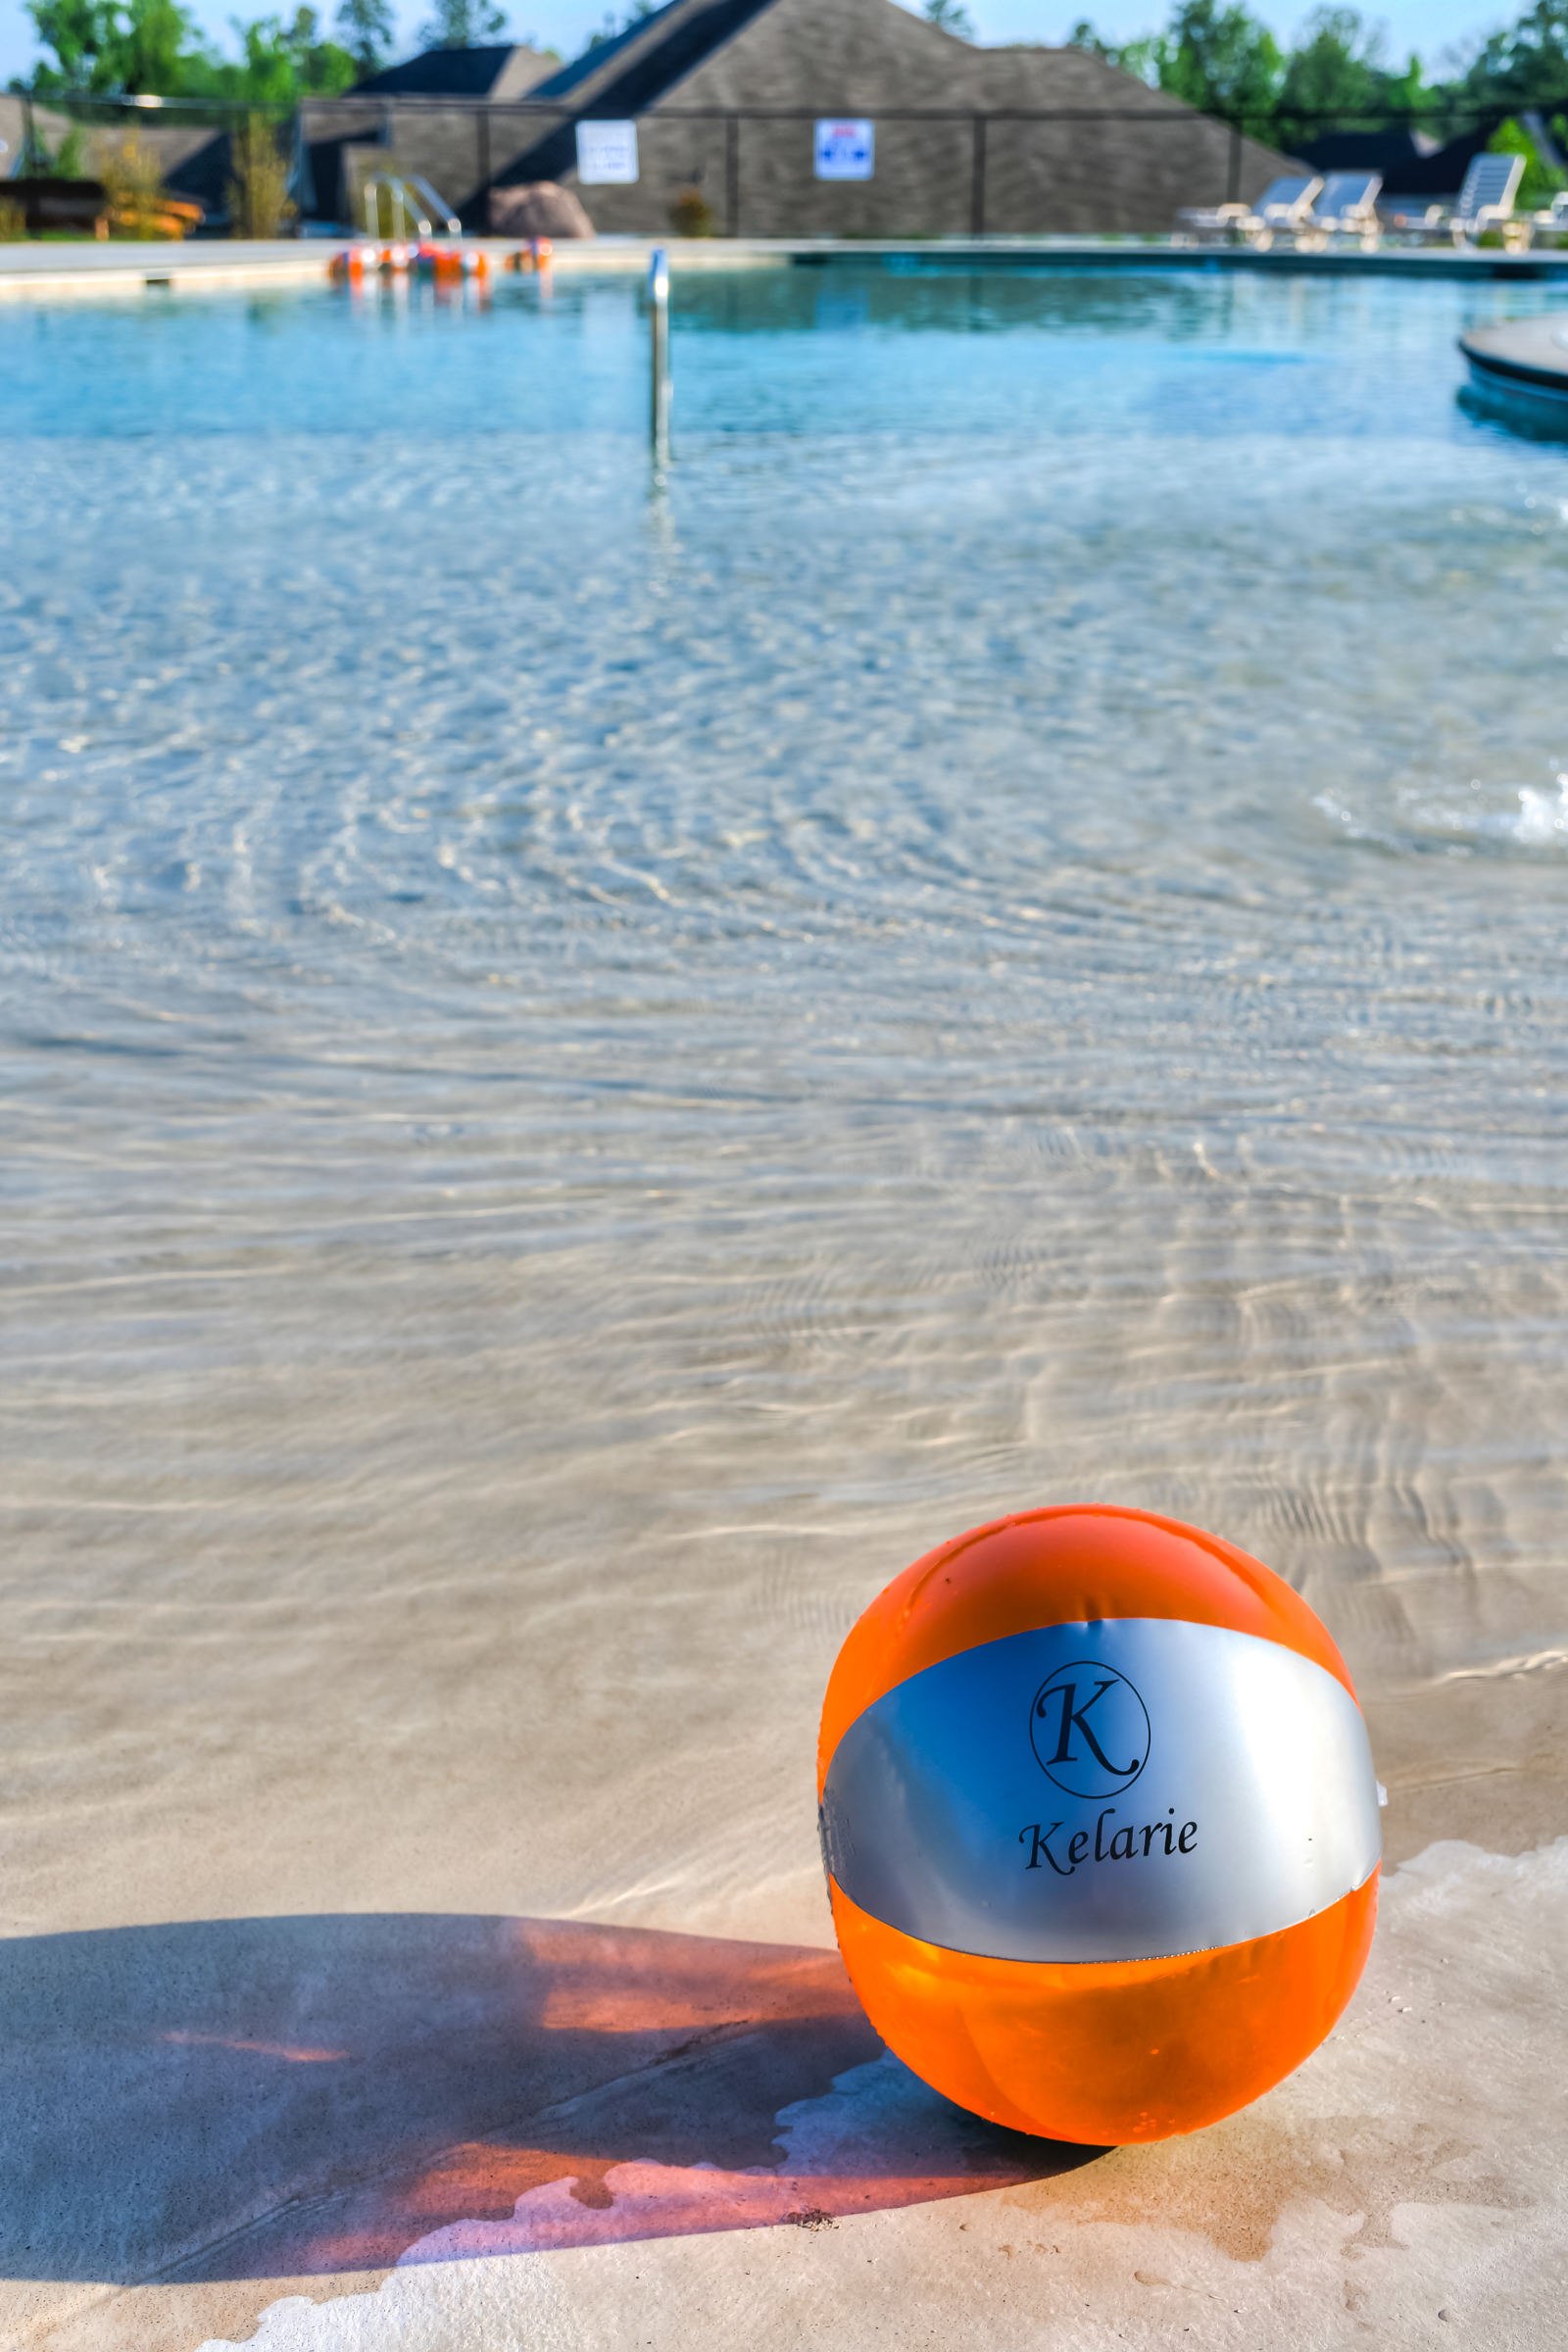 An image of a ball in the pool at Kelarie.